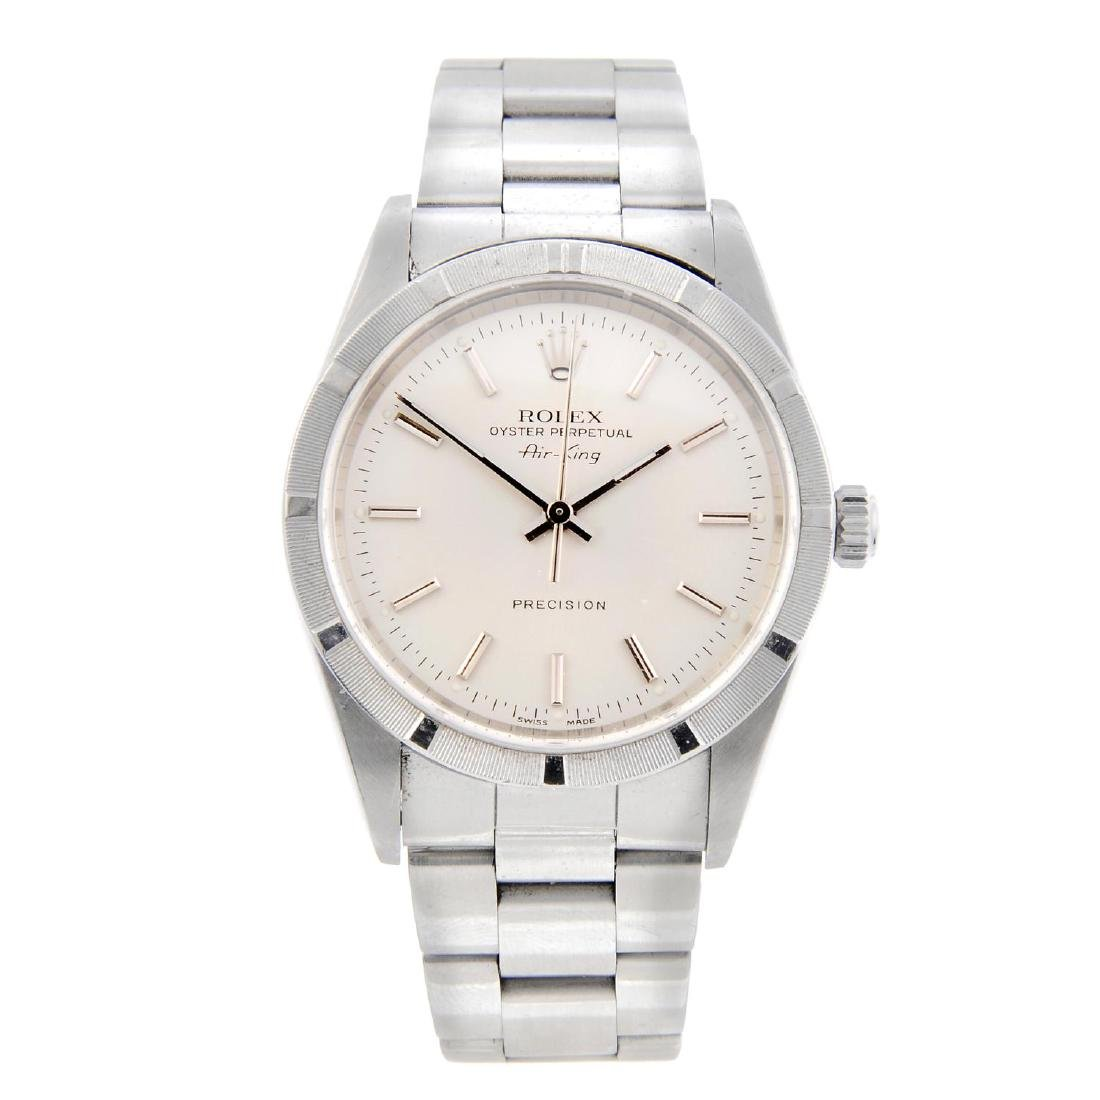 ROLEX - a gentleman's Oyster Perpetual Air-King